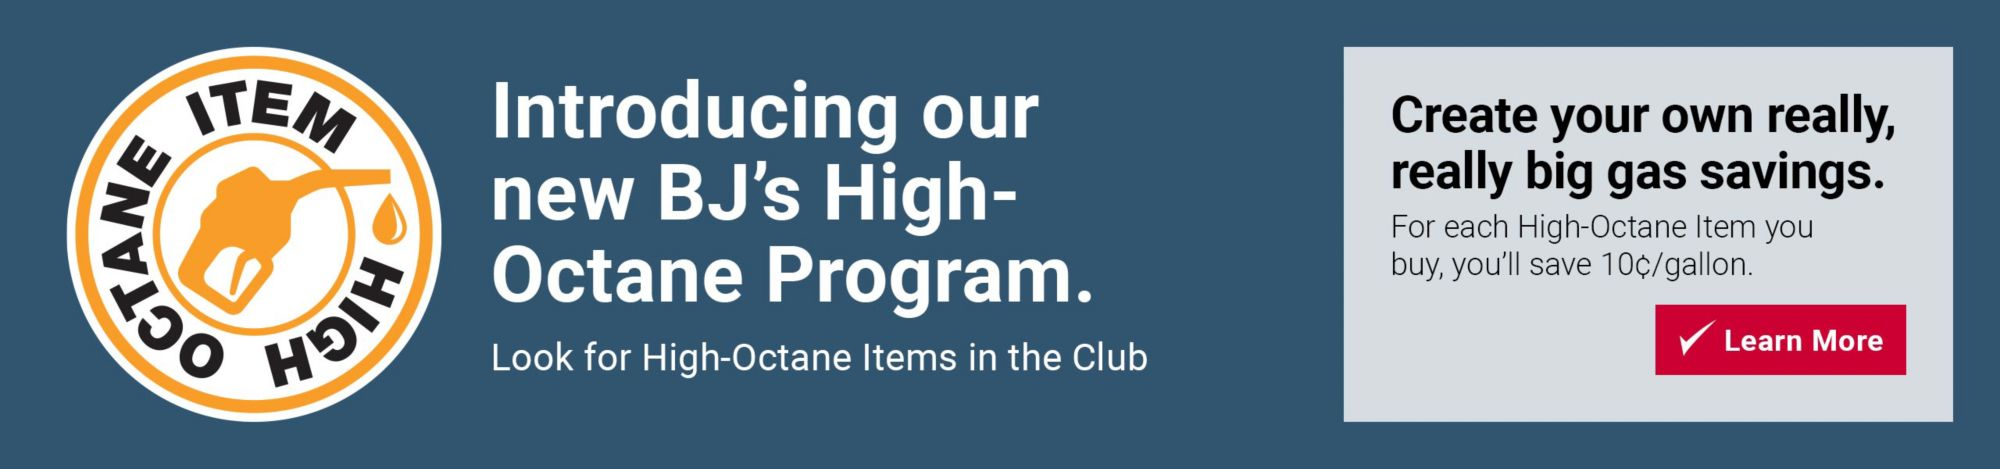 Introducing BJ's new High Octane Gas Program. Look for Items with High Octane logo in the club. For each High Octane Item you buy, you'll save 10 cents per gallon. Click to learn more.